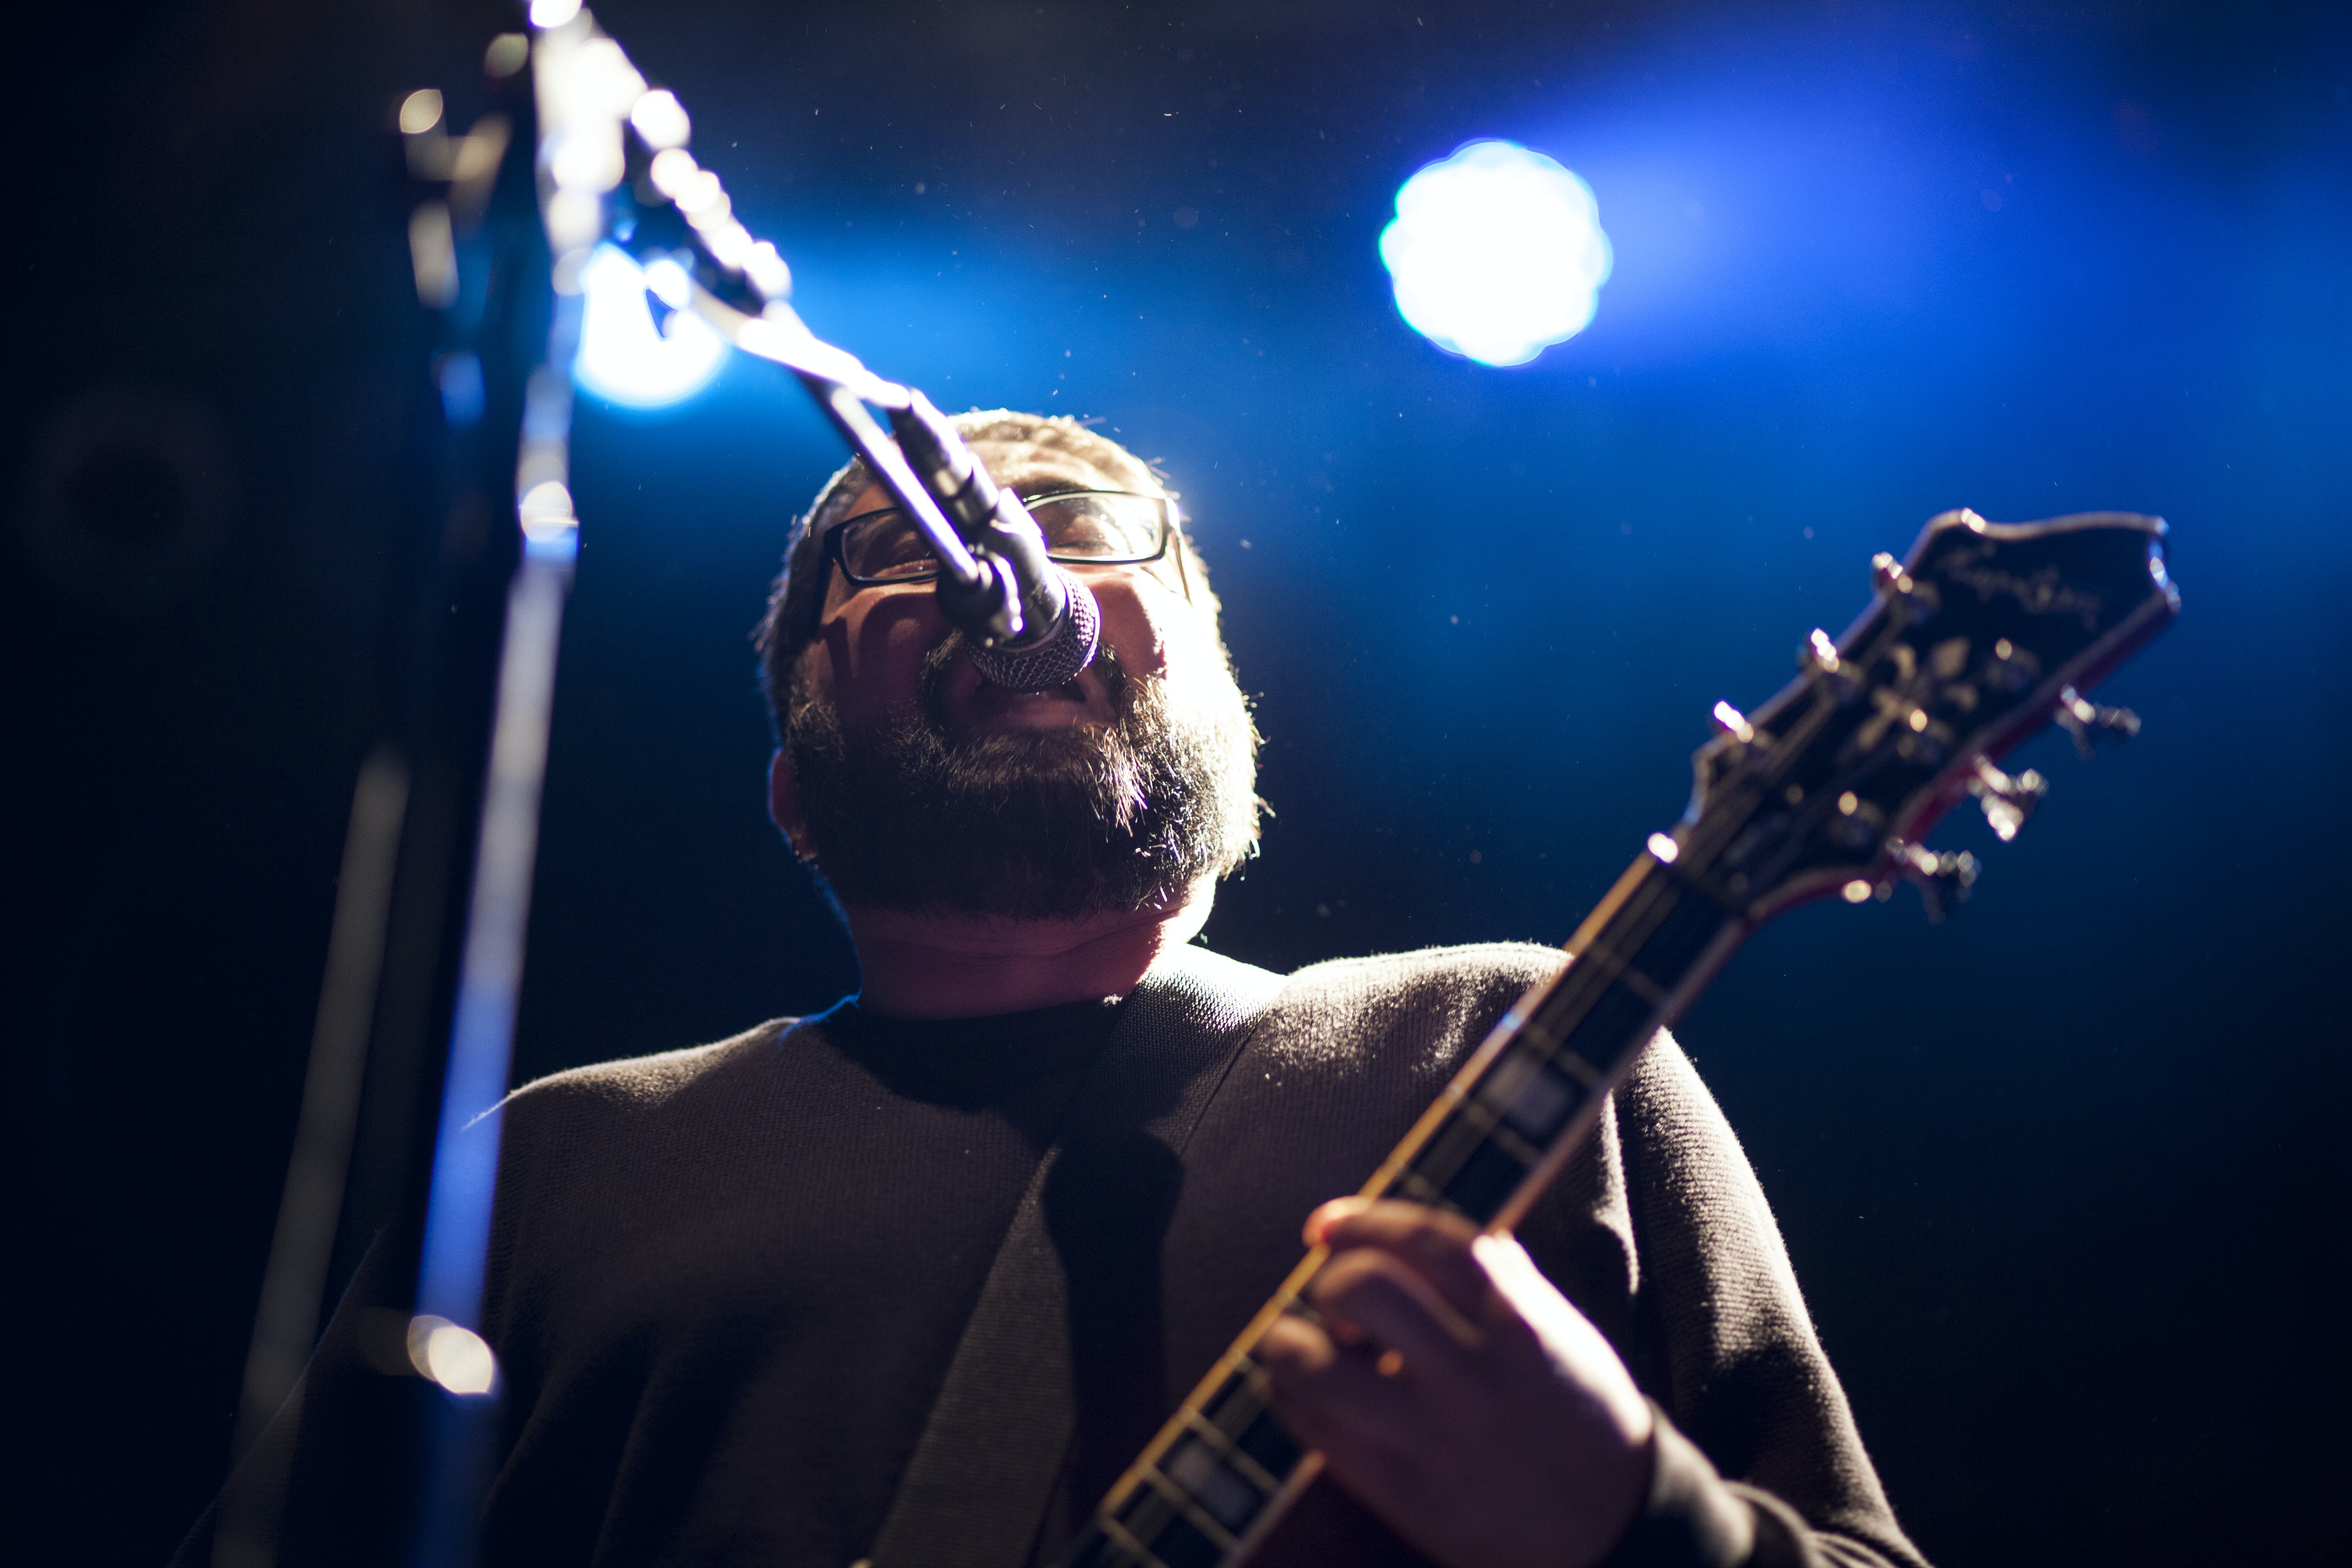 A man with a beard playing the guitar and singing at a concert